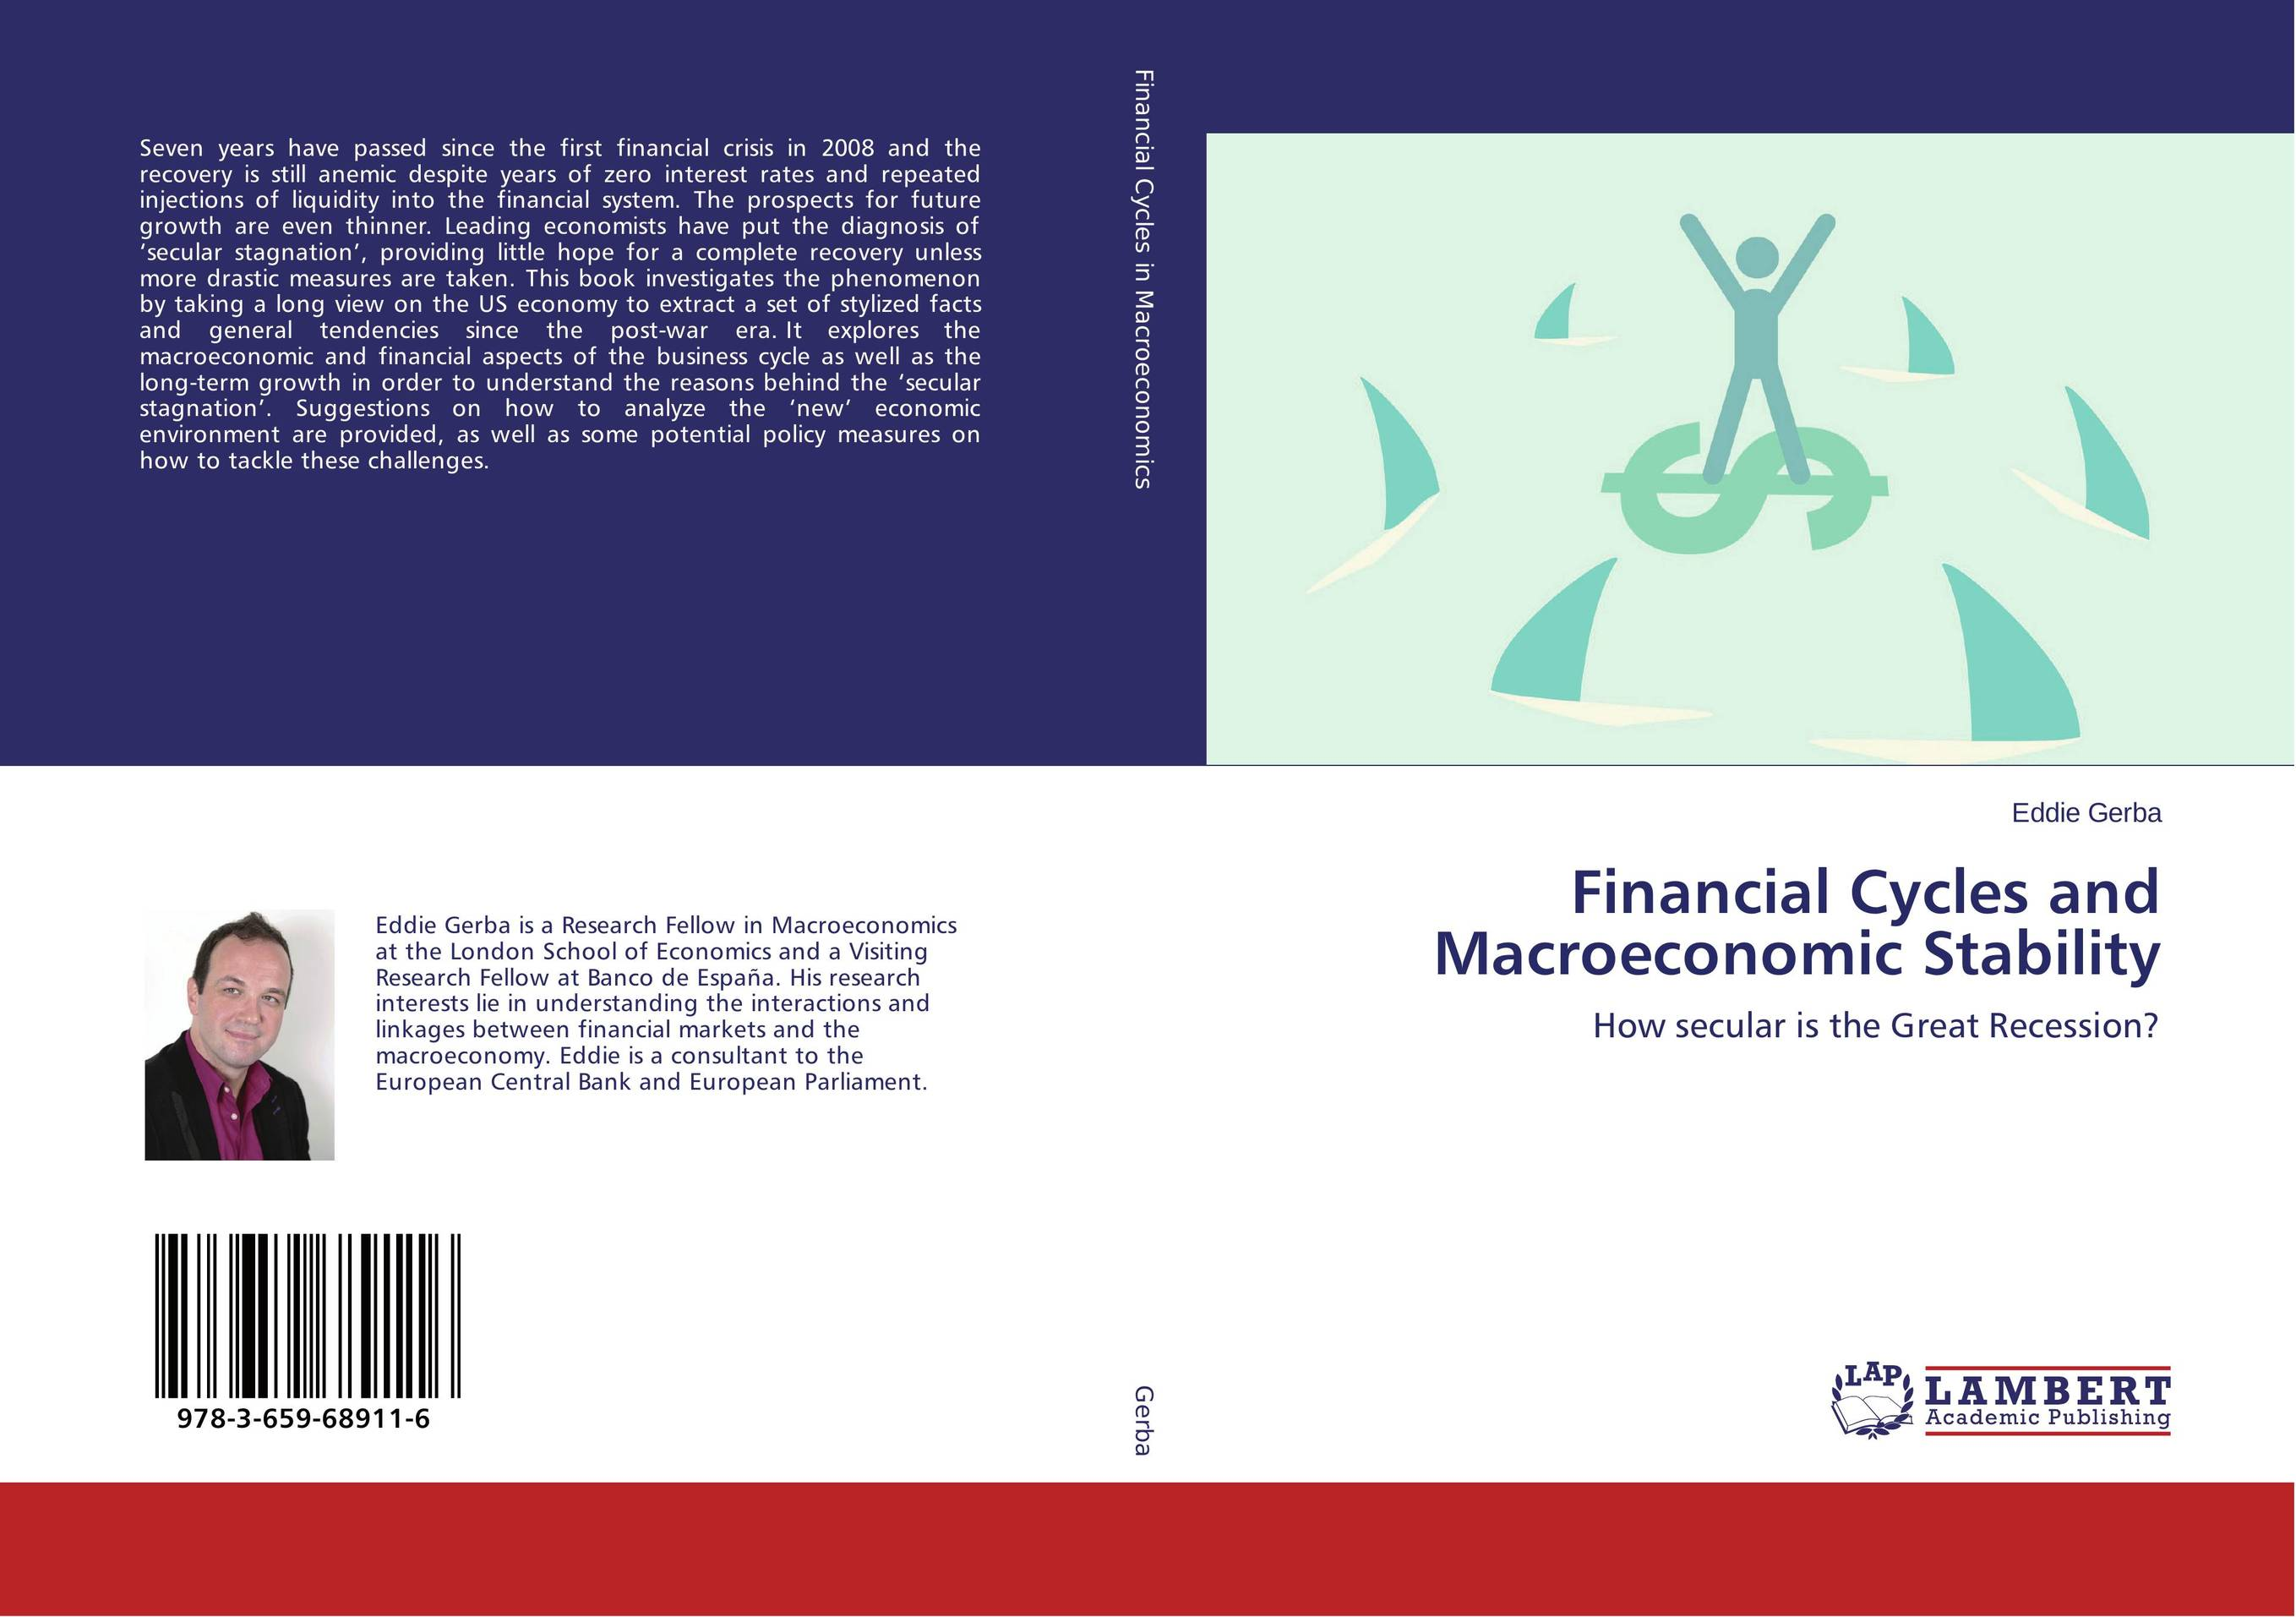 Financial Cycles and Macroeconomic Stability